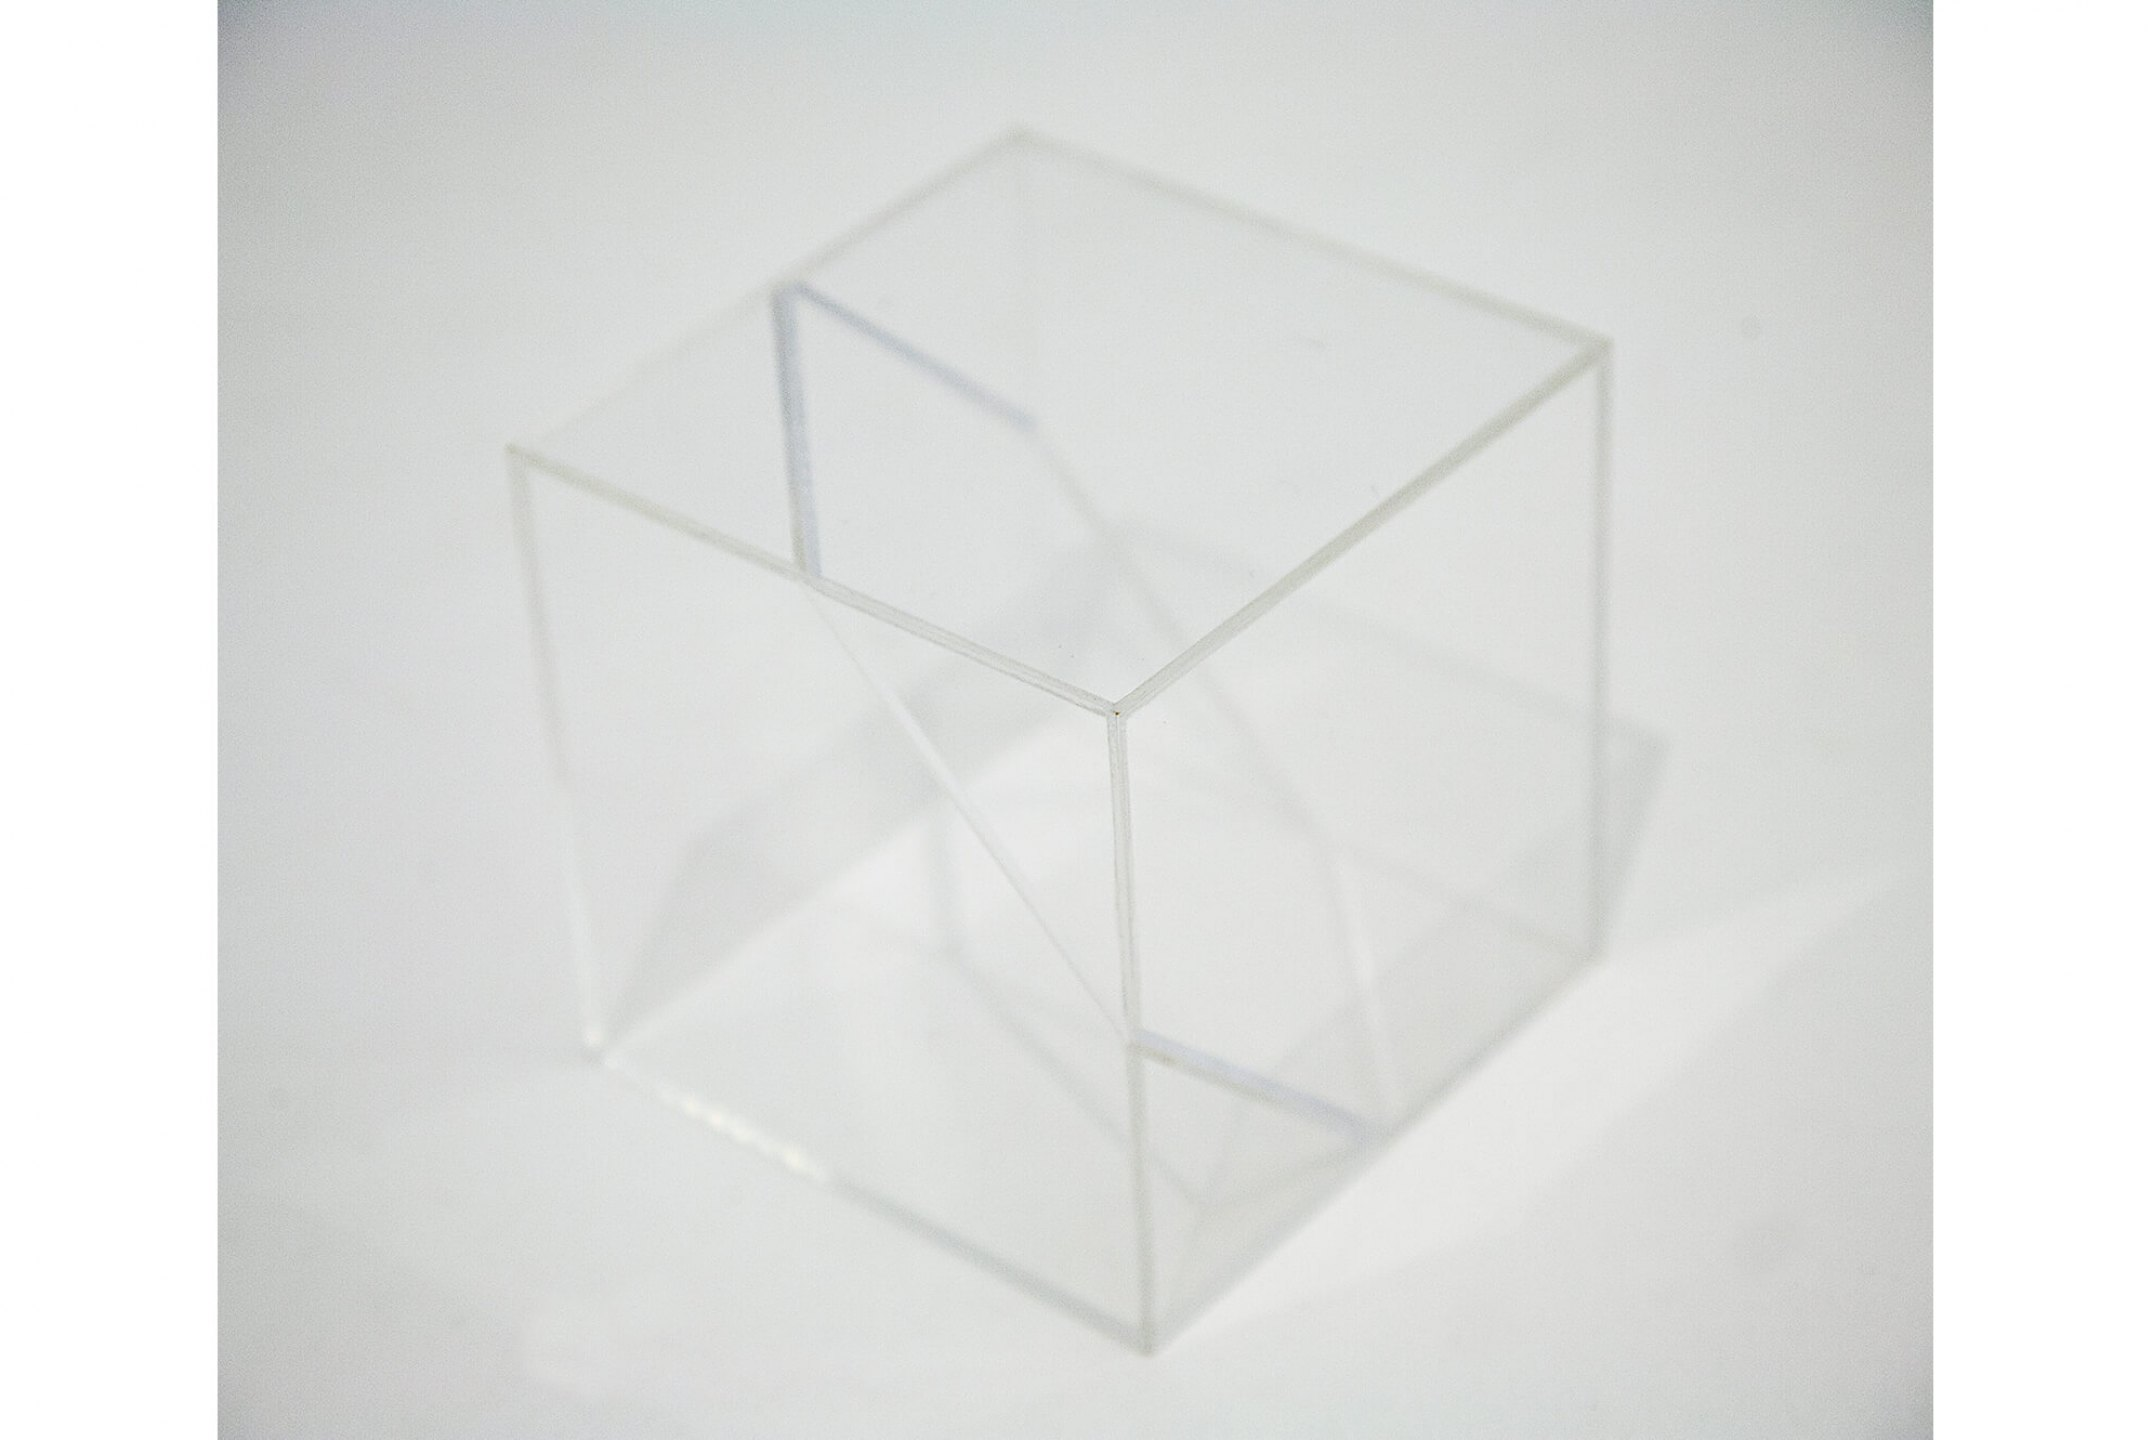 Roberto Winter, <em>Volume cúbico hexagonal</em>, 2013, acrylic box, 10 × 10 × 10 cm - Mendes Wood DM